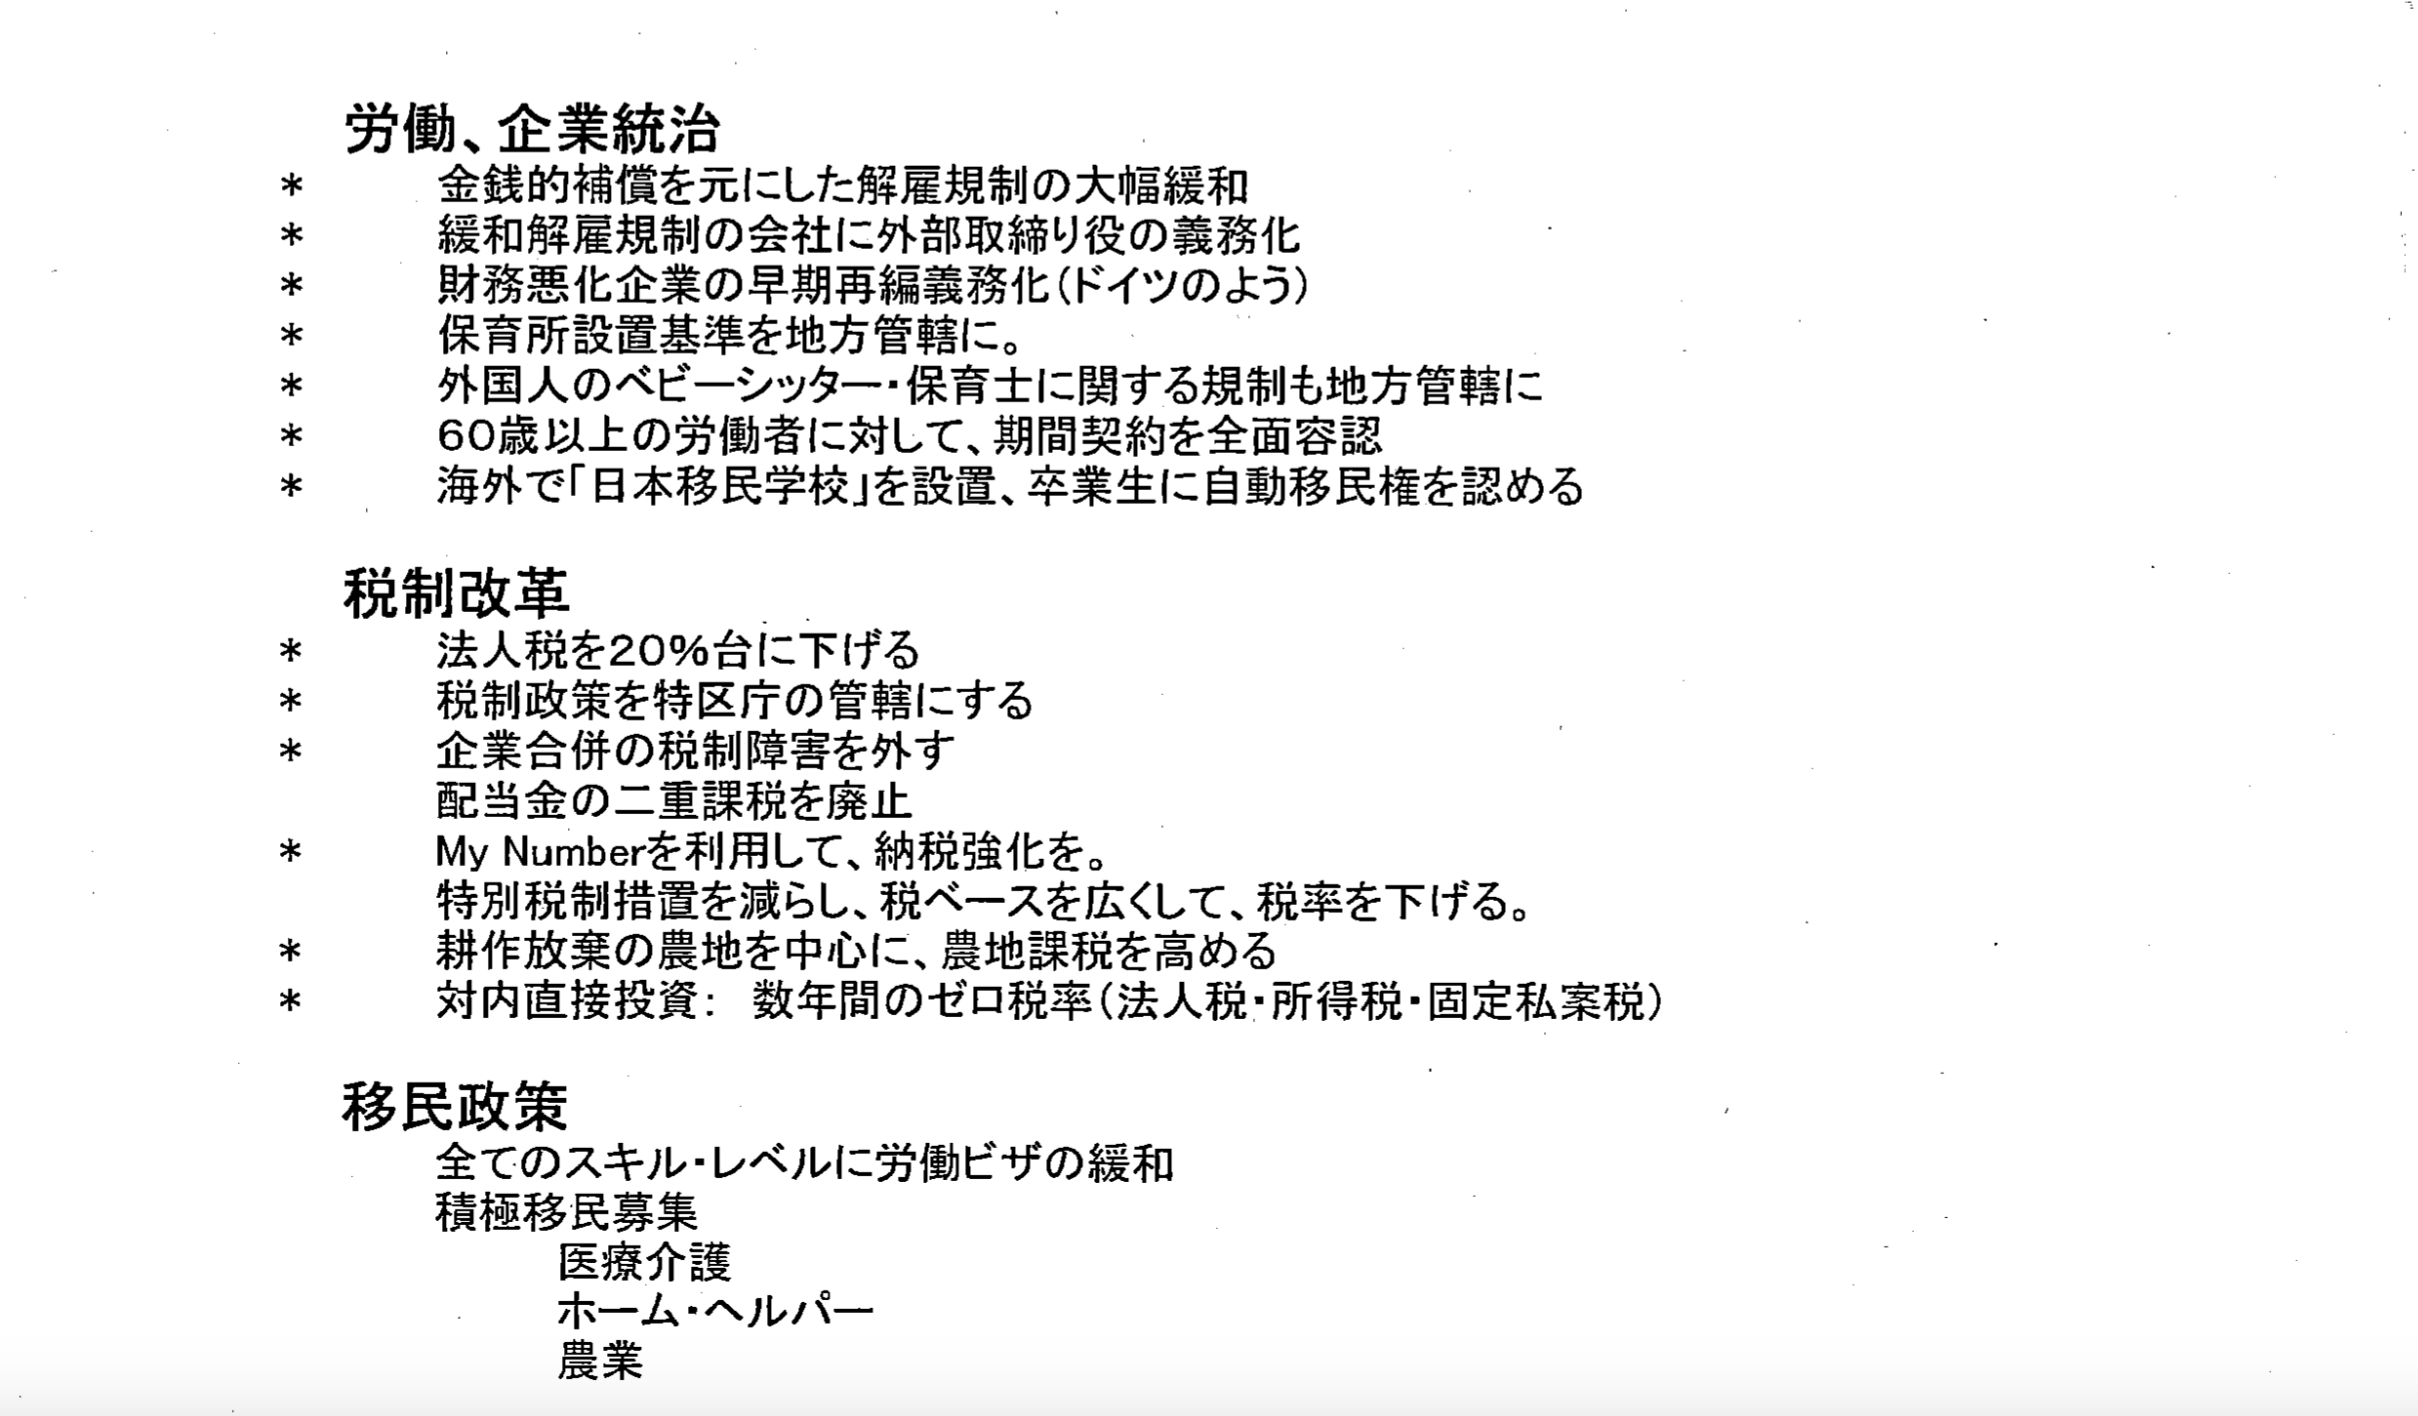 20160612210532090.png